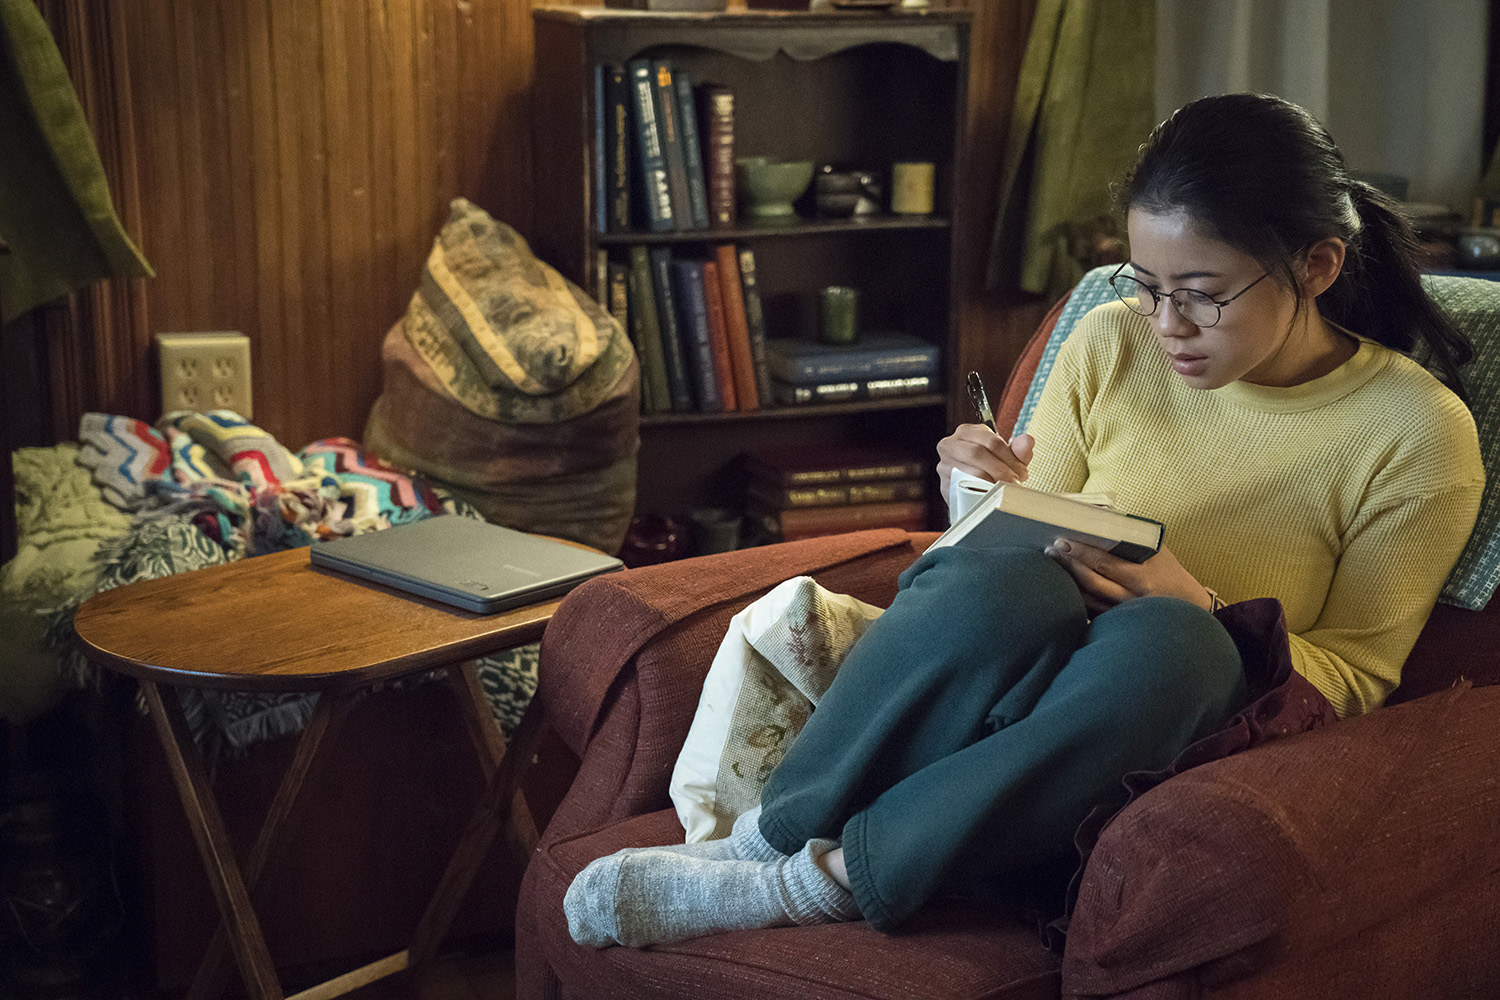 still image of leah lewis writing in a book for the movie the half of it